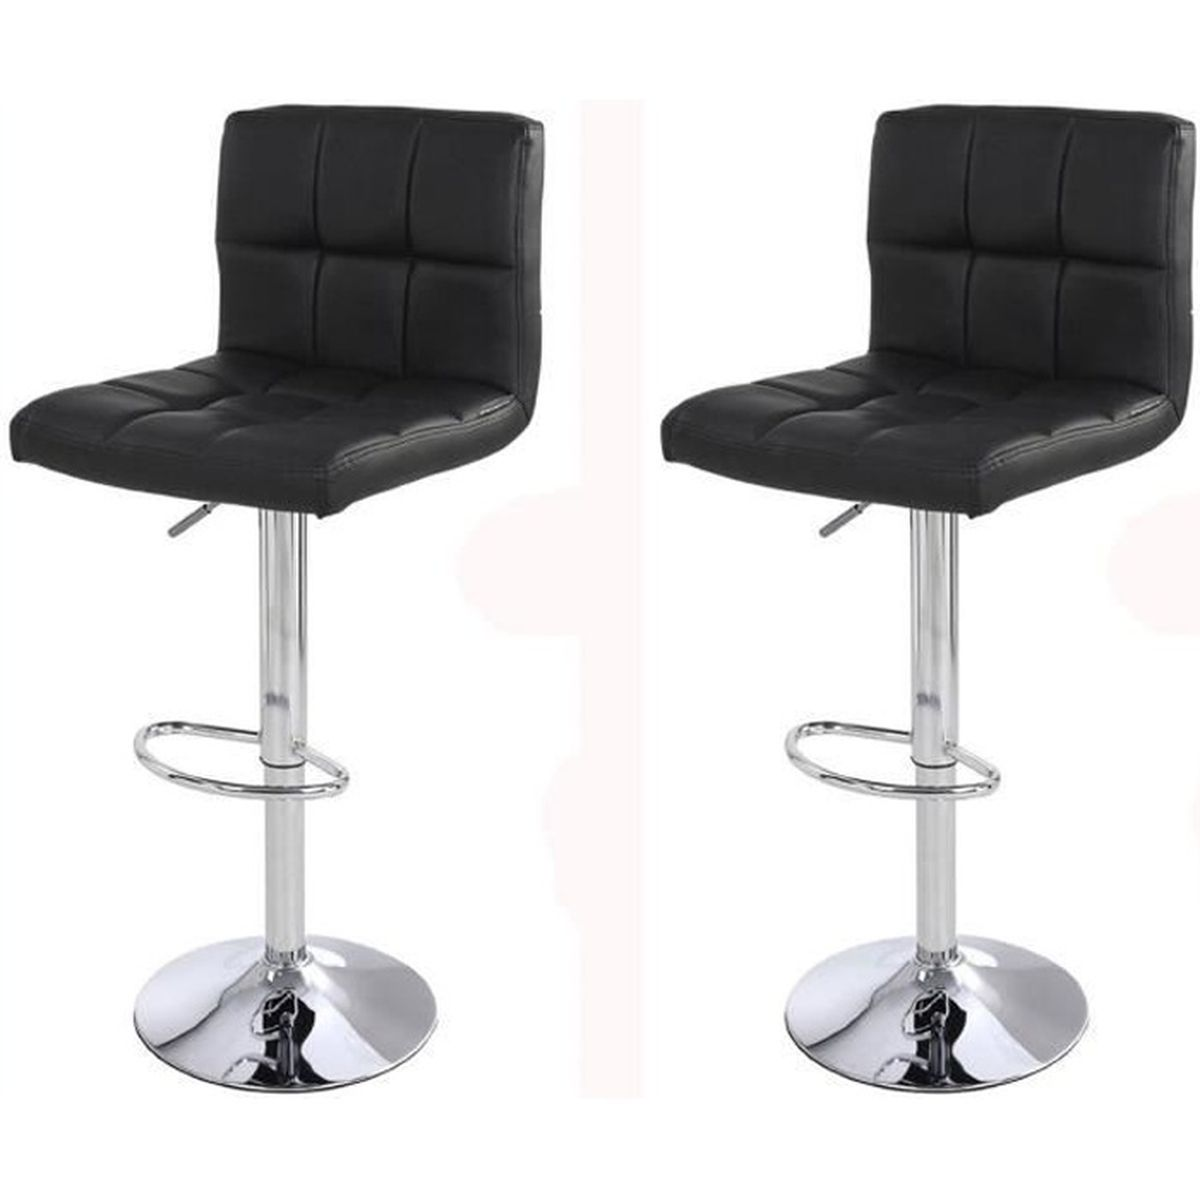 lot de 2 tabourets de bar ilot central cuisine bistrot simili cuir noir 2 brelan noirs achat. Black Bedroom Furniture Sets. Home Design Ideas